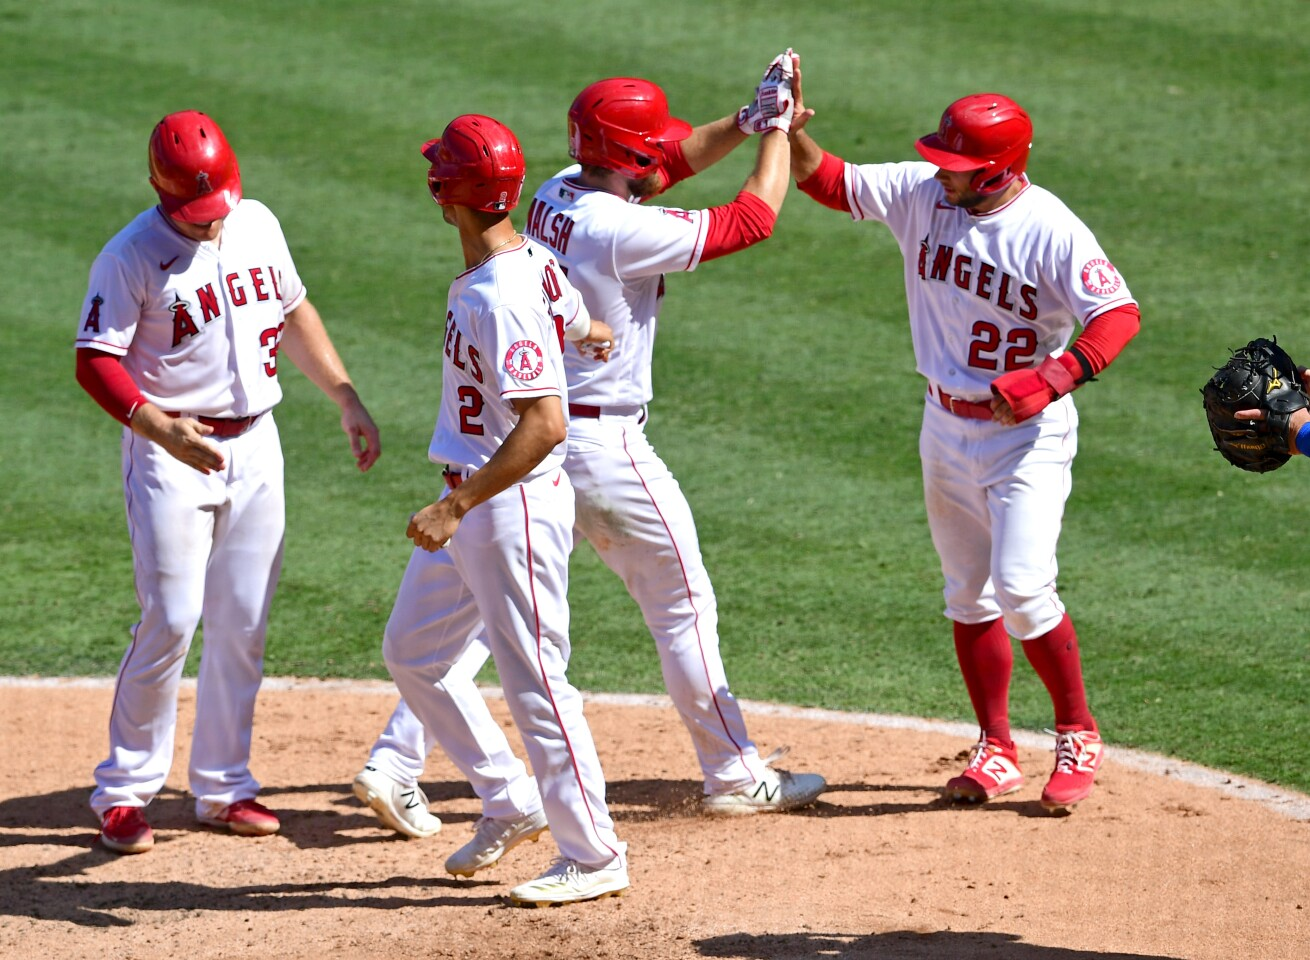 ANAHEIM, CA - SEPTEMBER 21: Jared Walsh #25 is congratulated by Max Stassi #33, Andrelton Simmons #2 and David Fletcher #22 of the Los Angeles Angels after hitting a grand slam home run in the fourth inning of the game against the Texas Rangers at Angel Stadium of Anaheim on September 21, 2020 in Anaheim, California. (Photo by Jayne Kamin-Oncea/Getty Images)